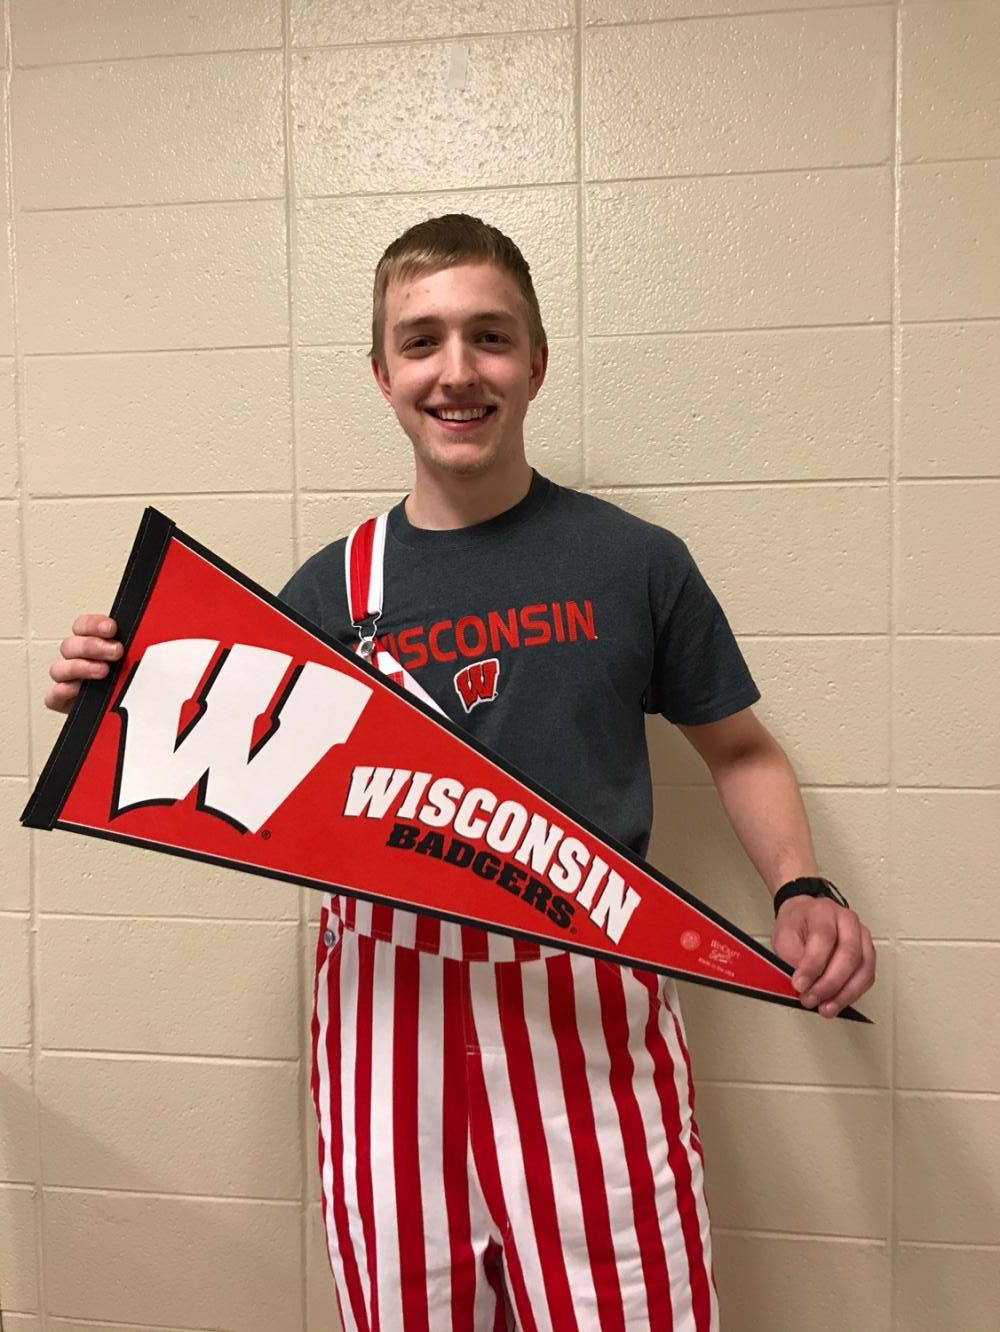 Senior Michael Elwing goes all out in some red-and-white pin-striped overalls, a UW-Madison shirt, and a matching banner to show off his Badger pride!